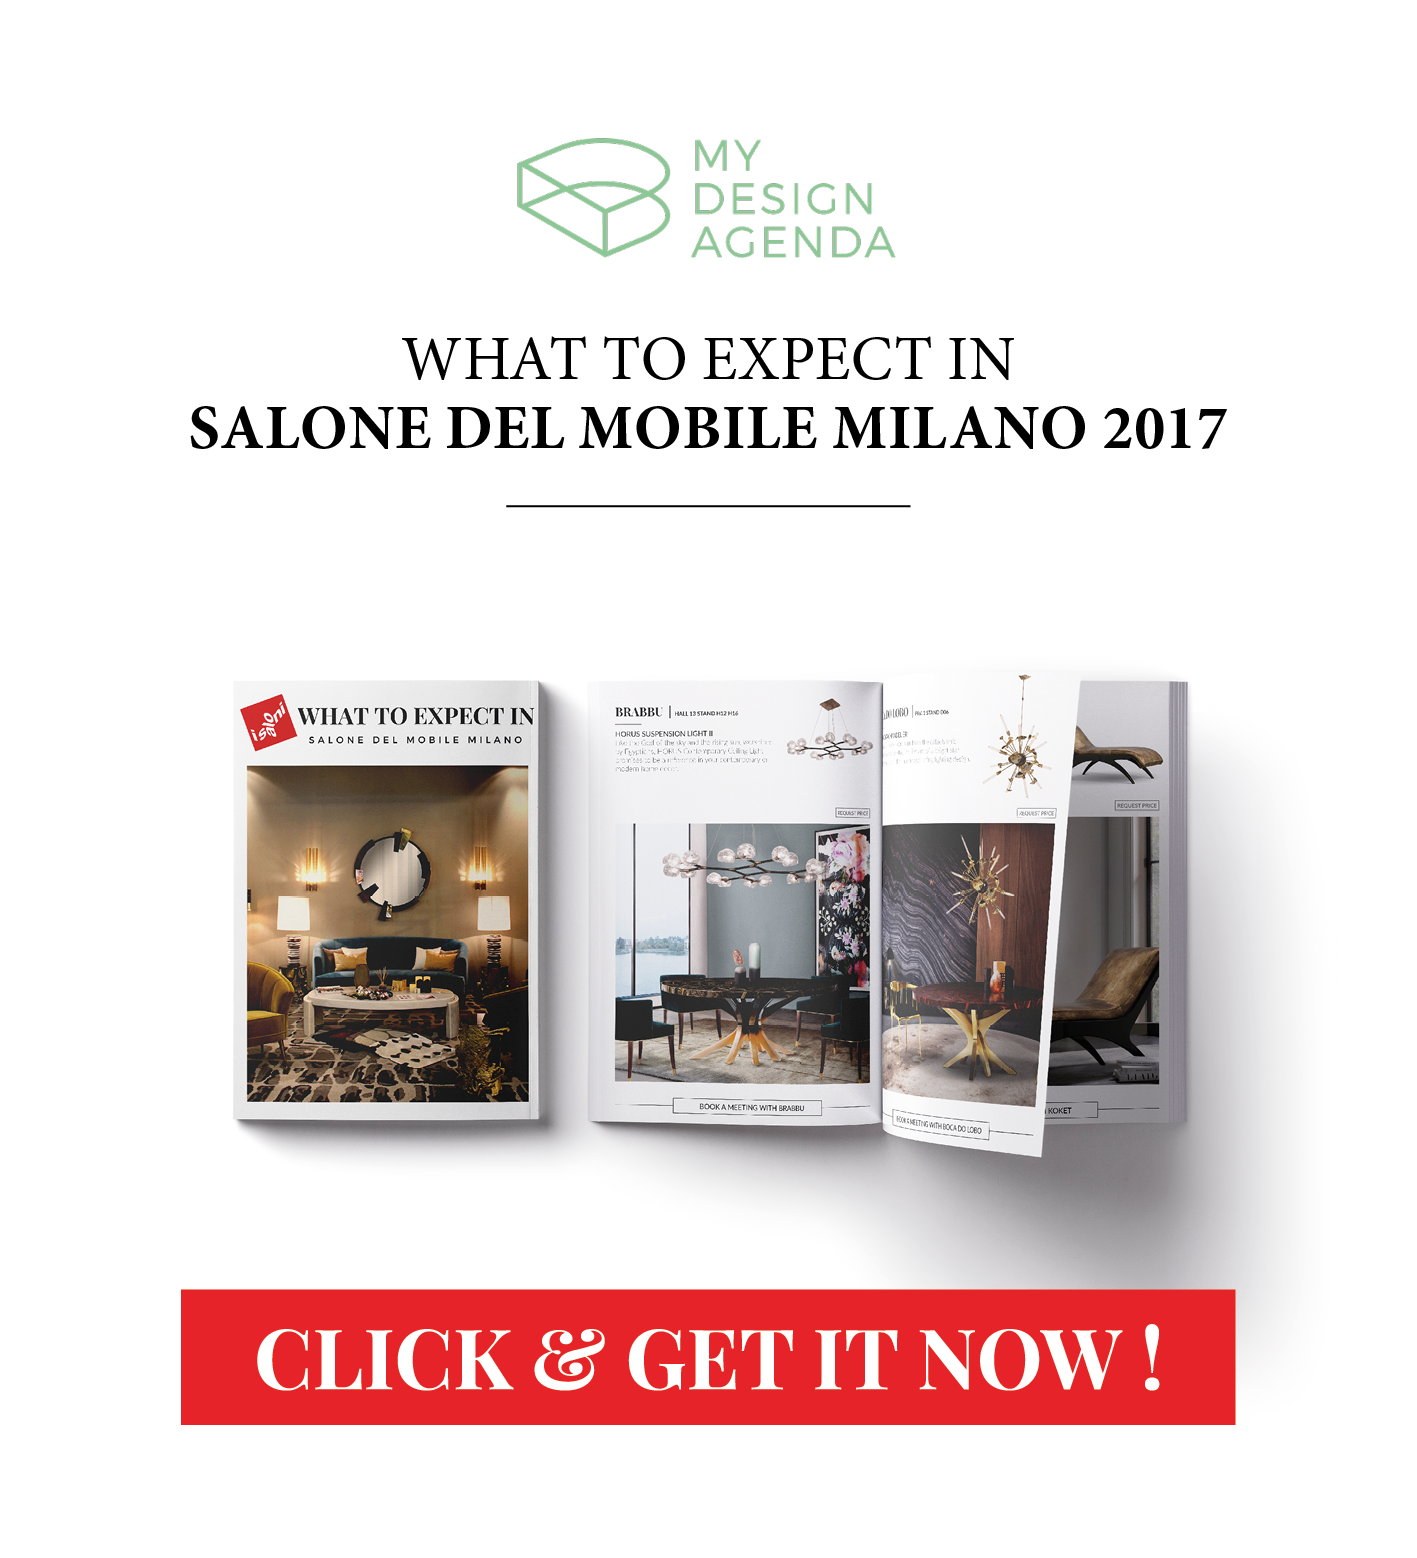 The best of salone del mobile milano 2017 for Fiera del mobile 2016 milano